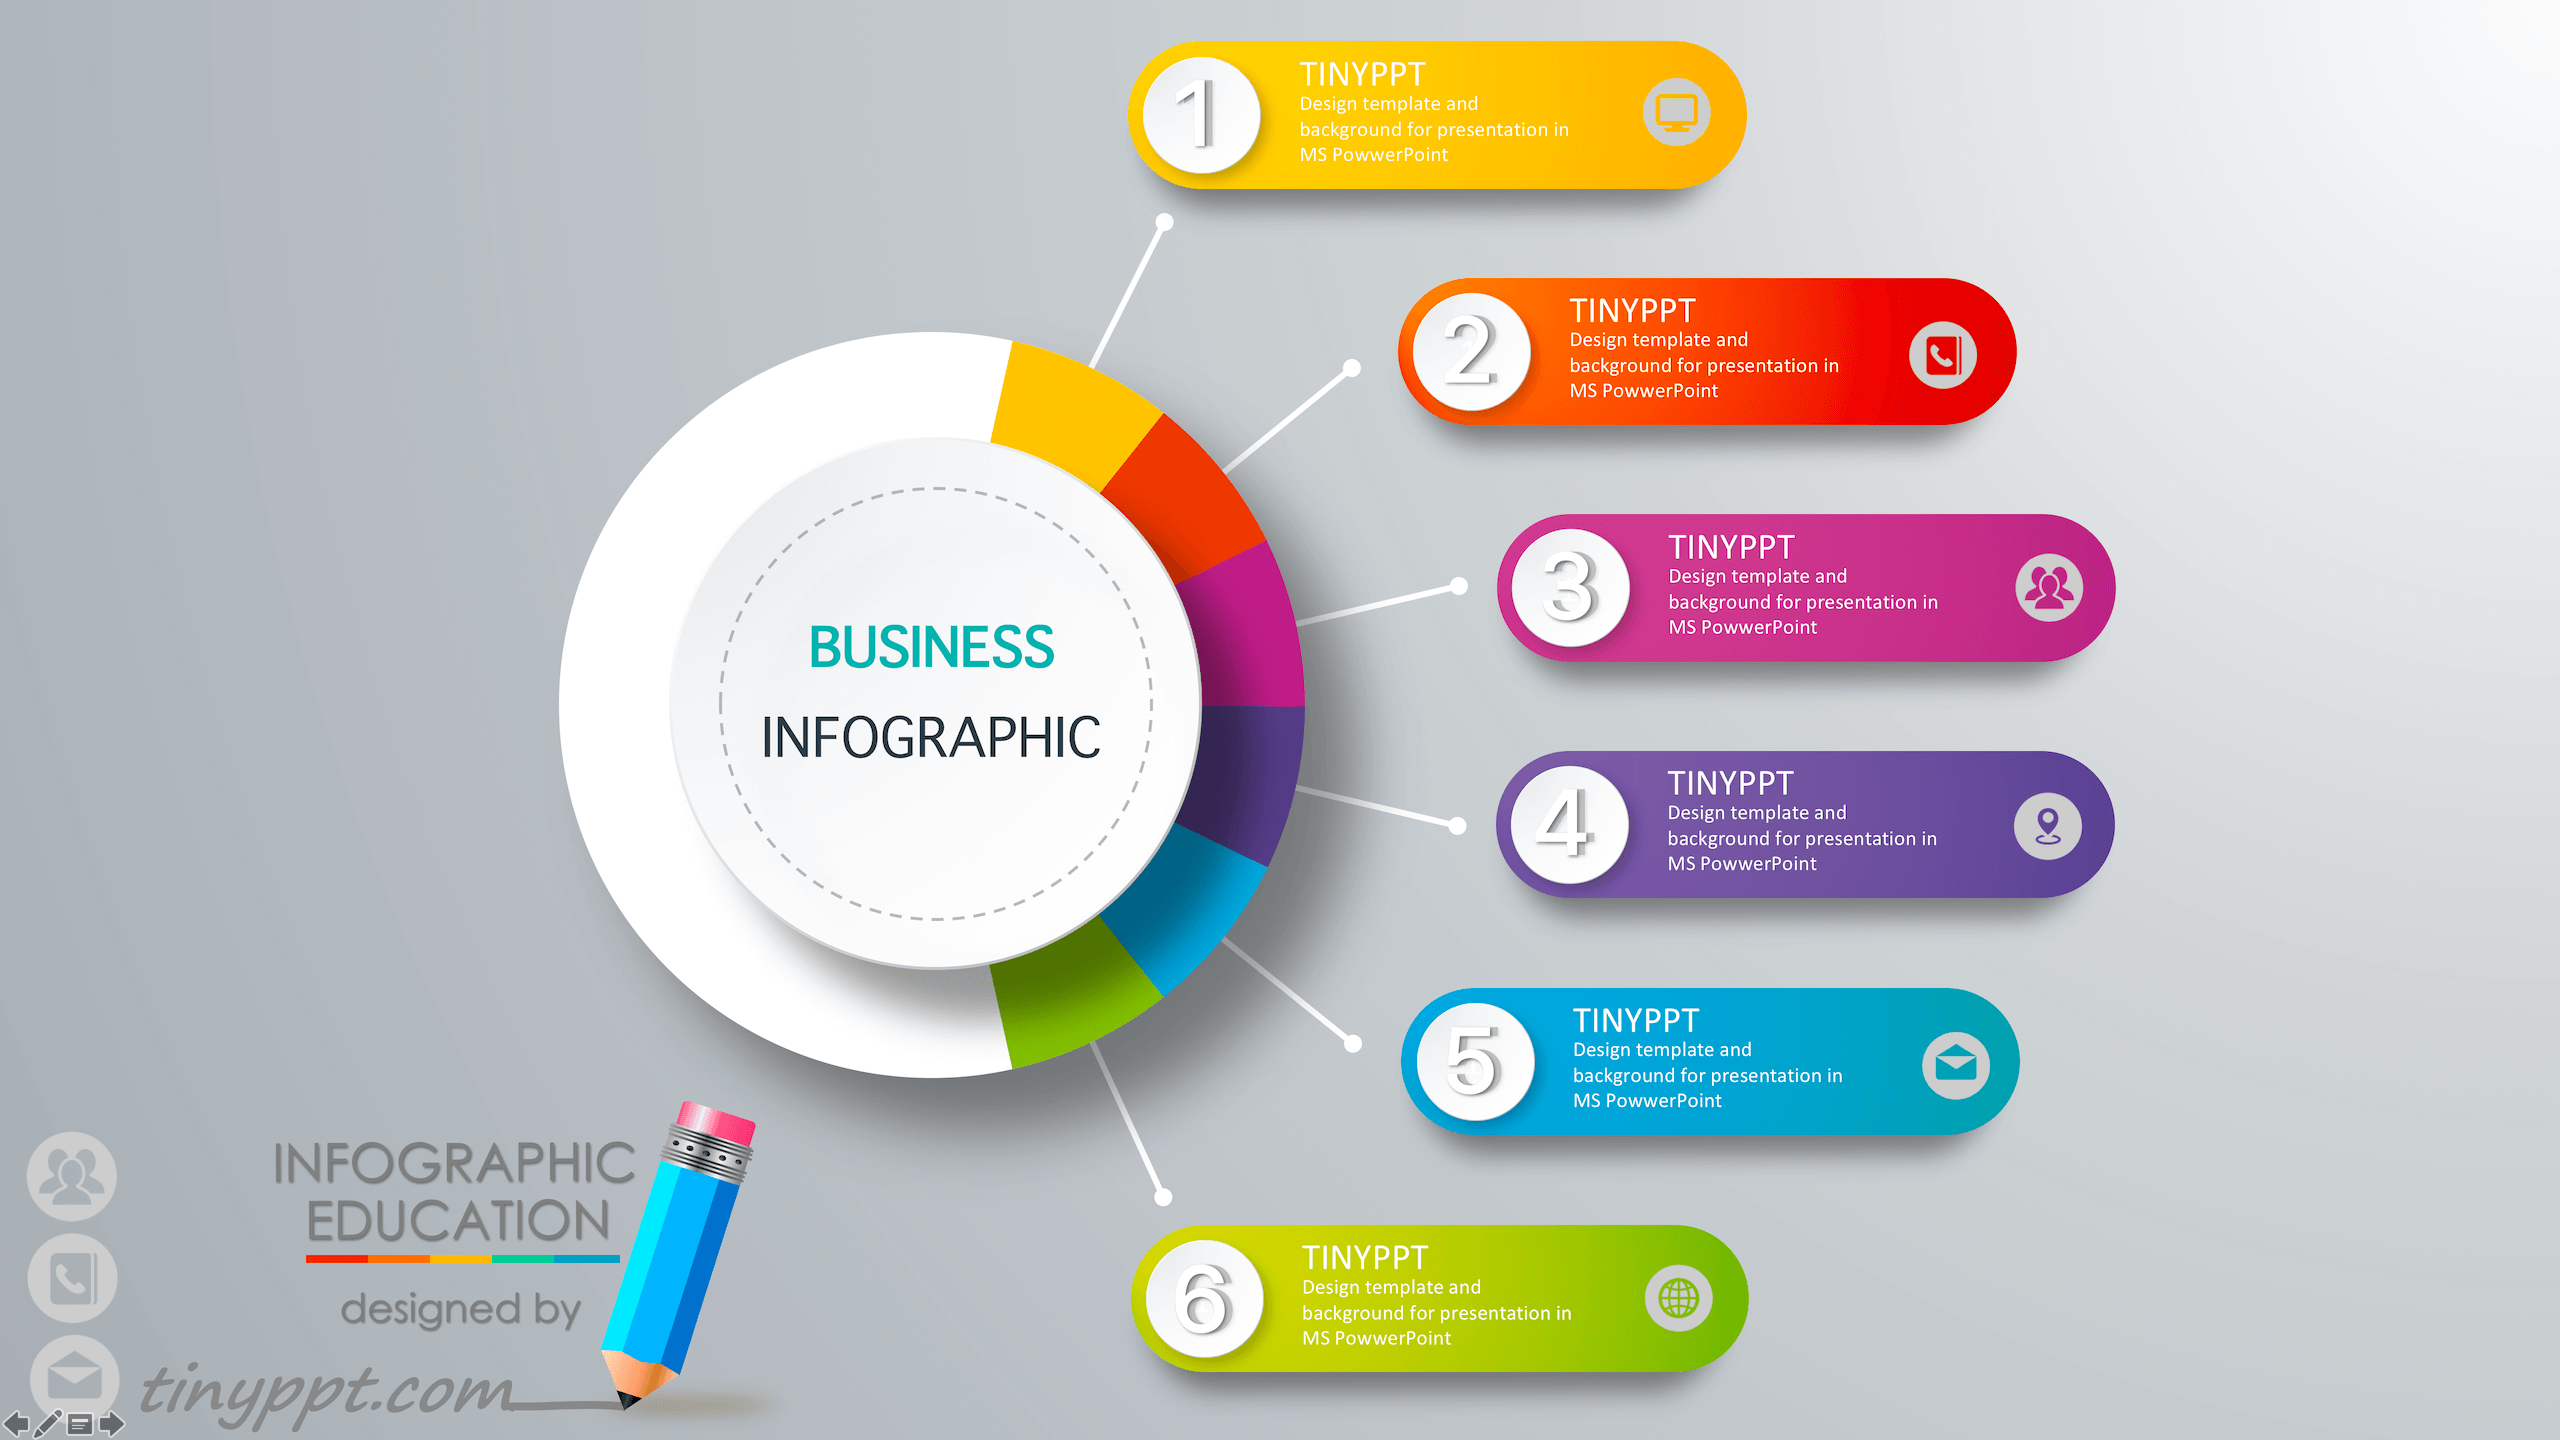 Powerpoint Infographic Icons Powerpoint Timeline Templates ...